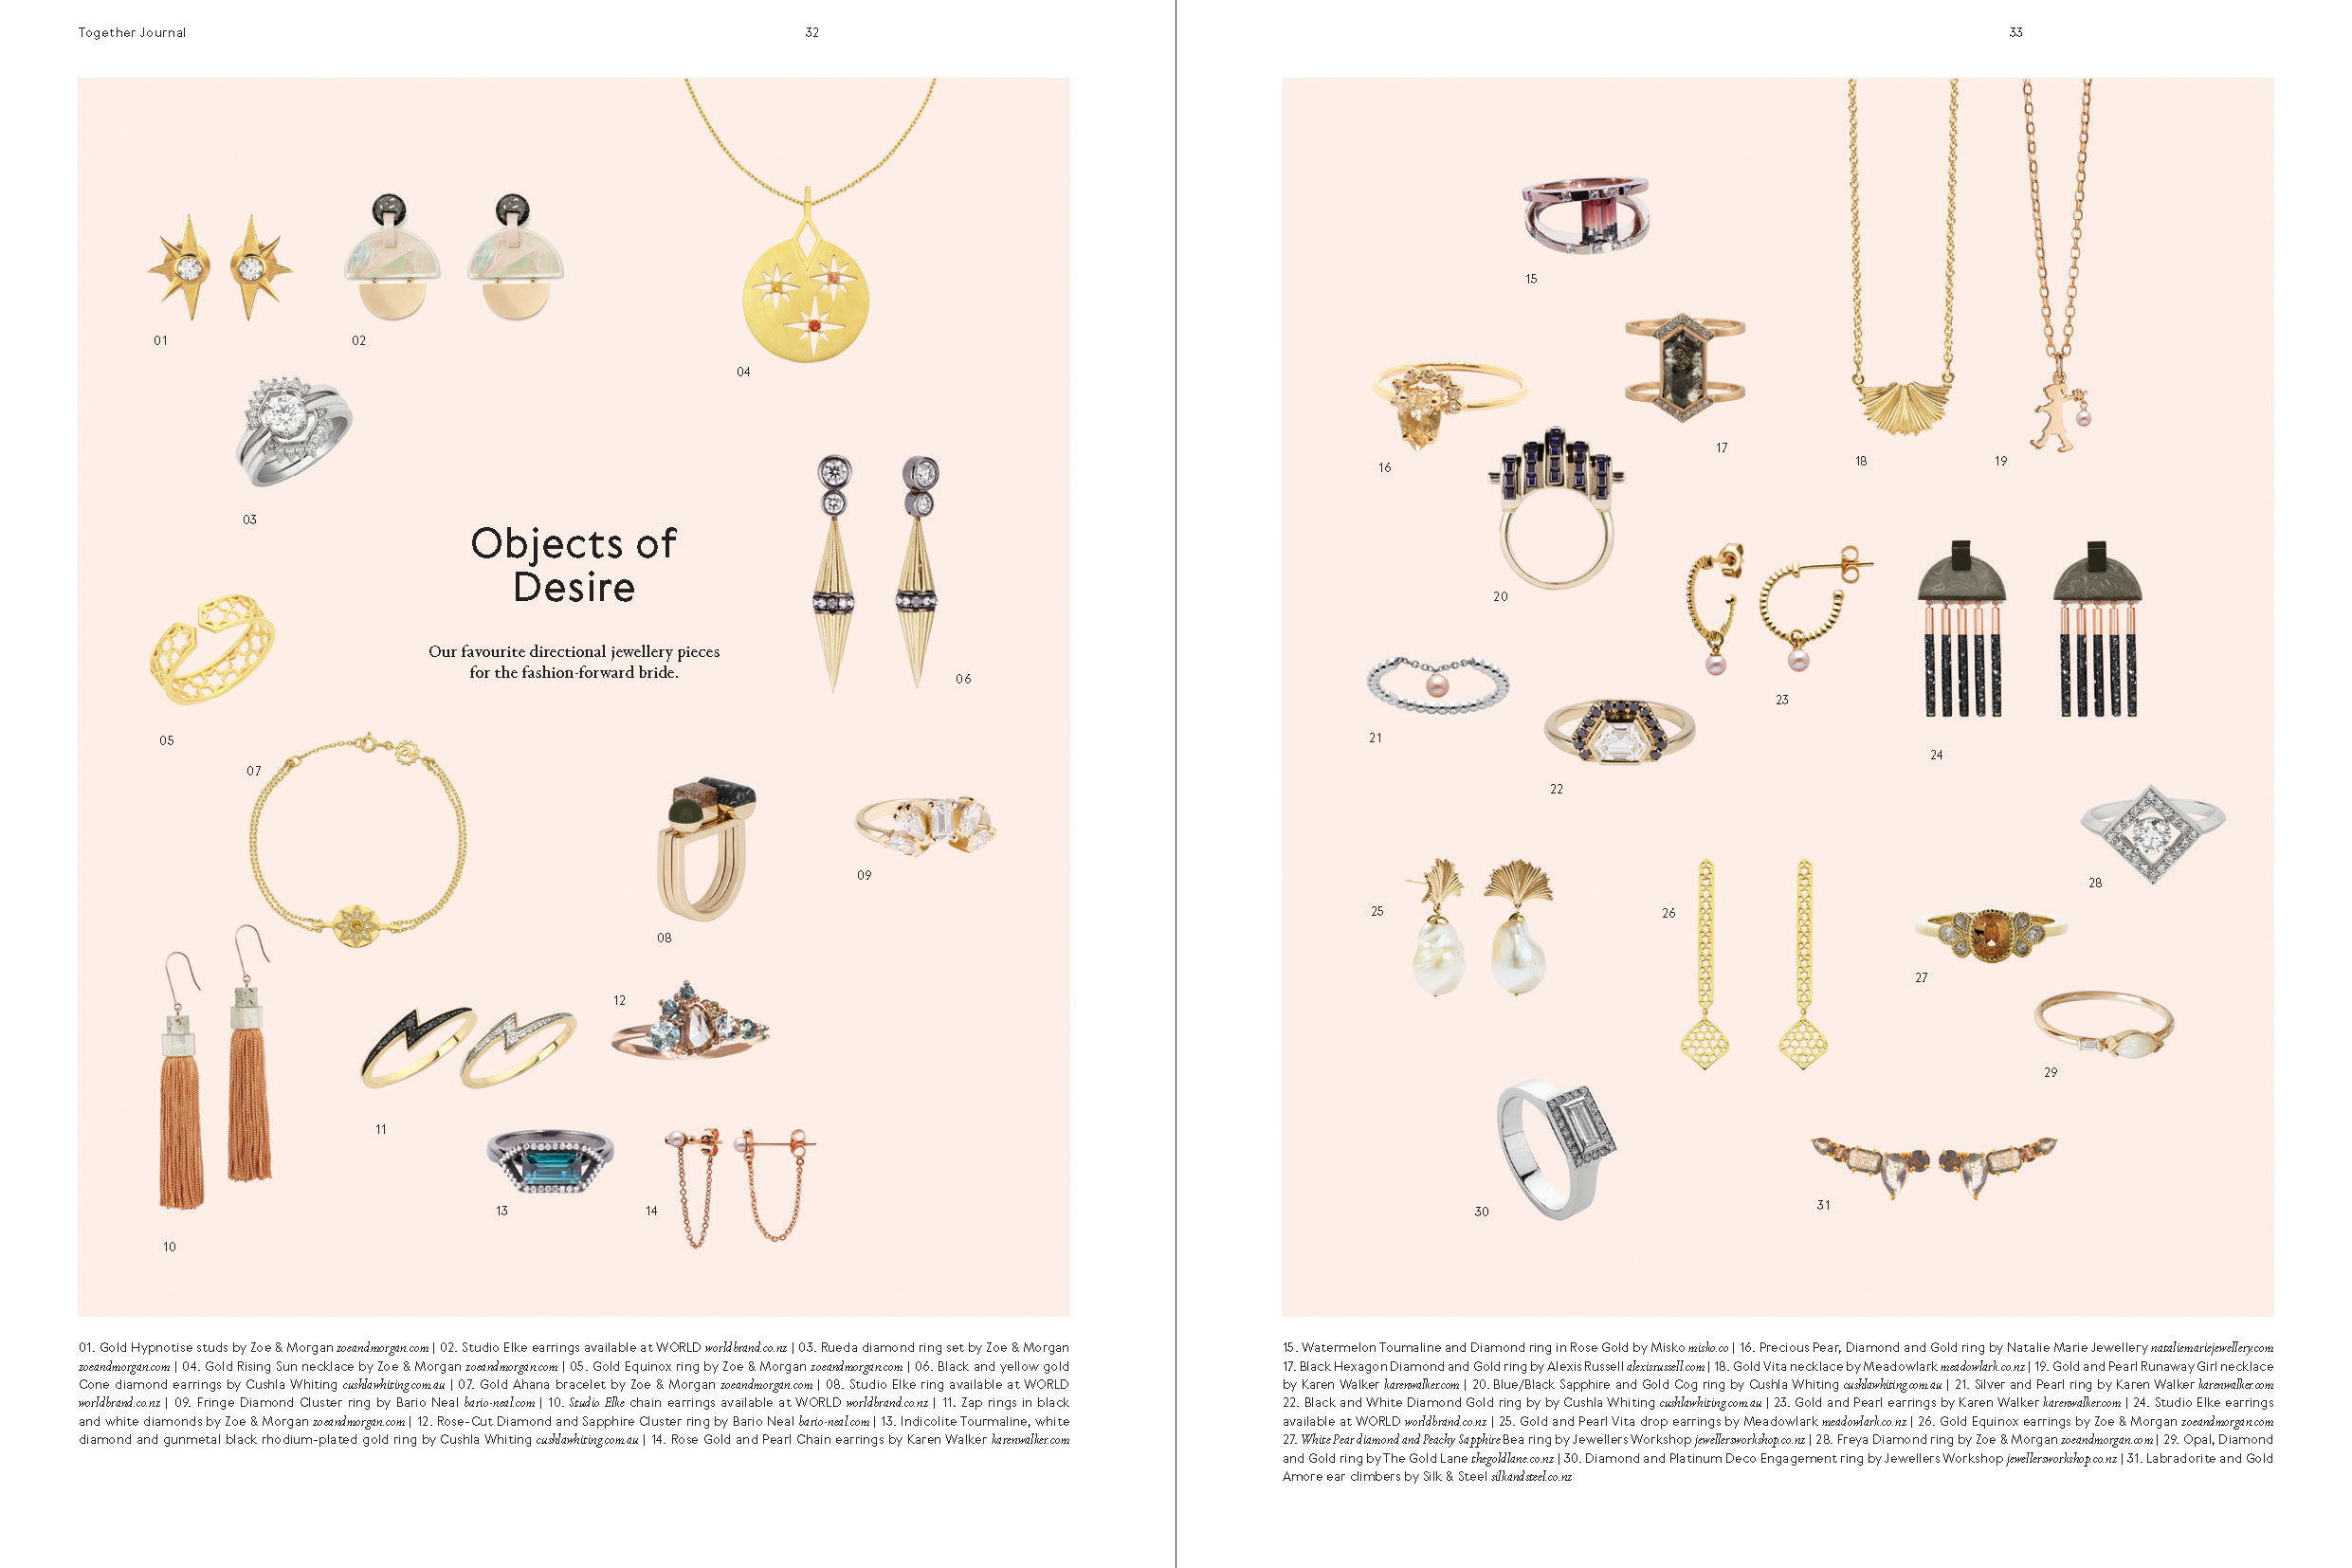 Categories: Fashion-Objects of Desire - Issue 10